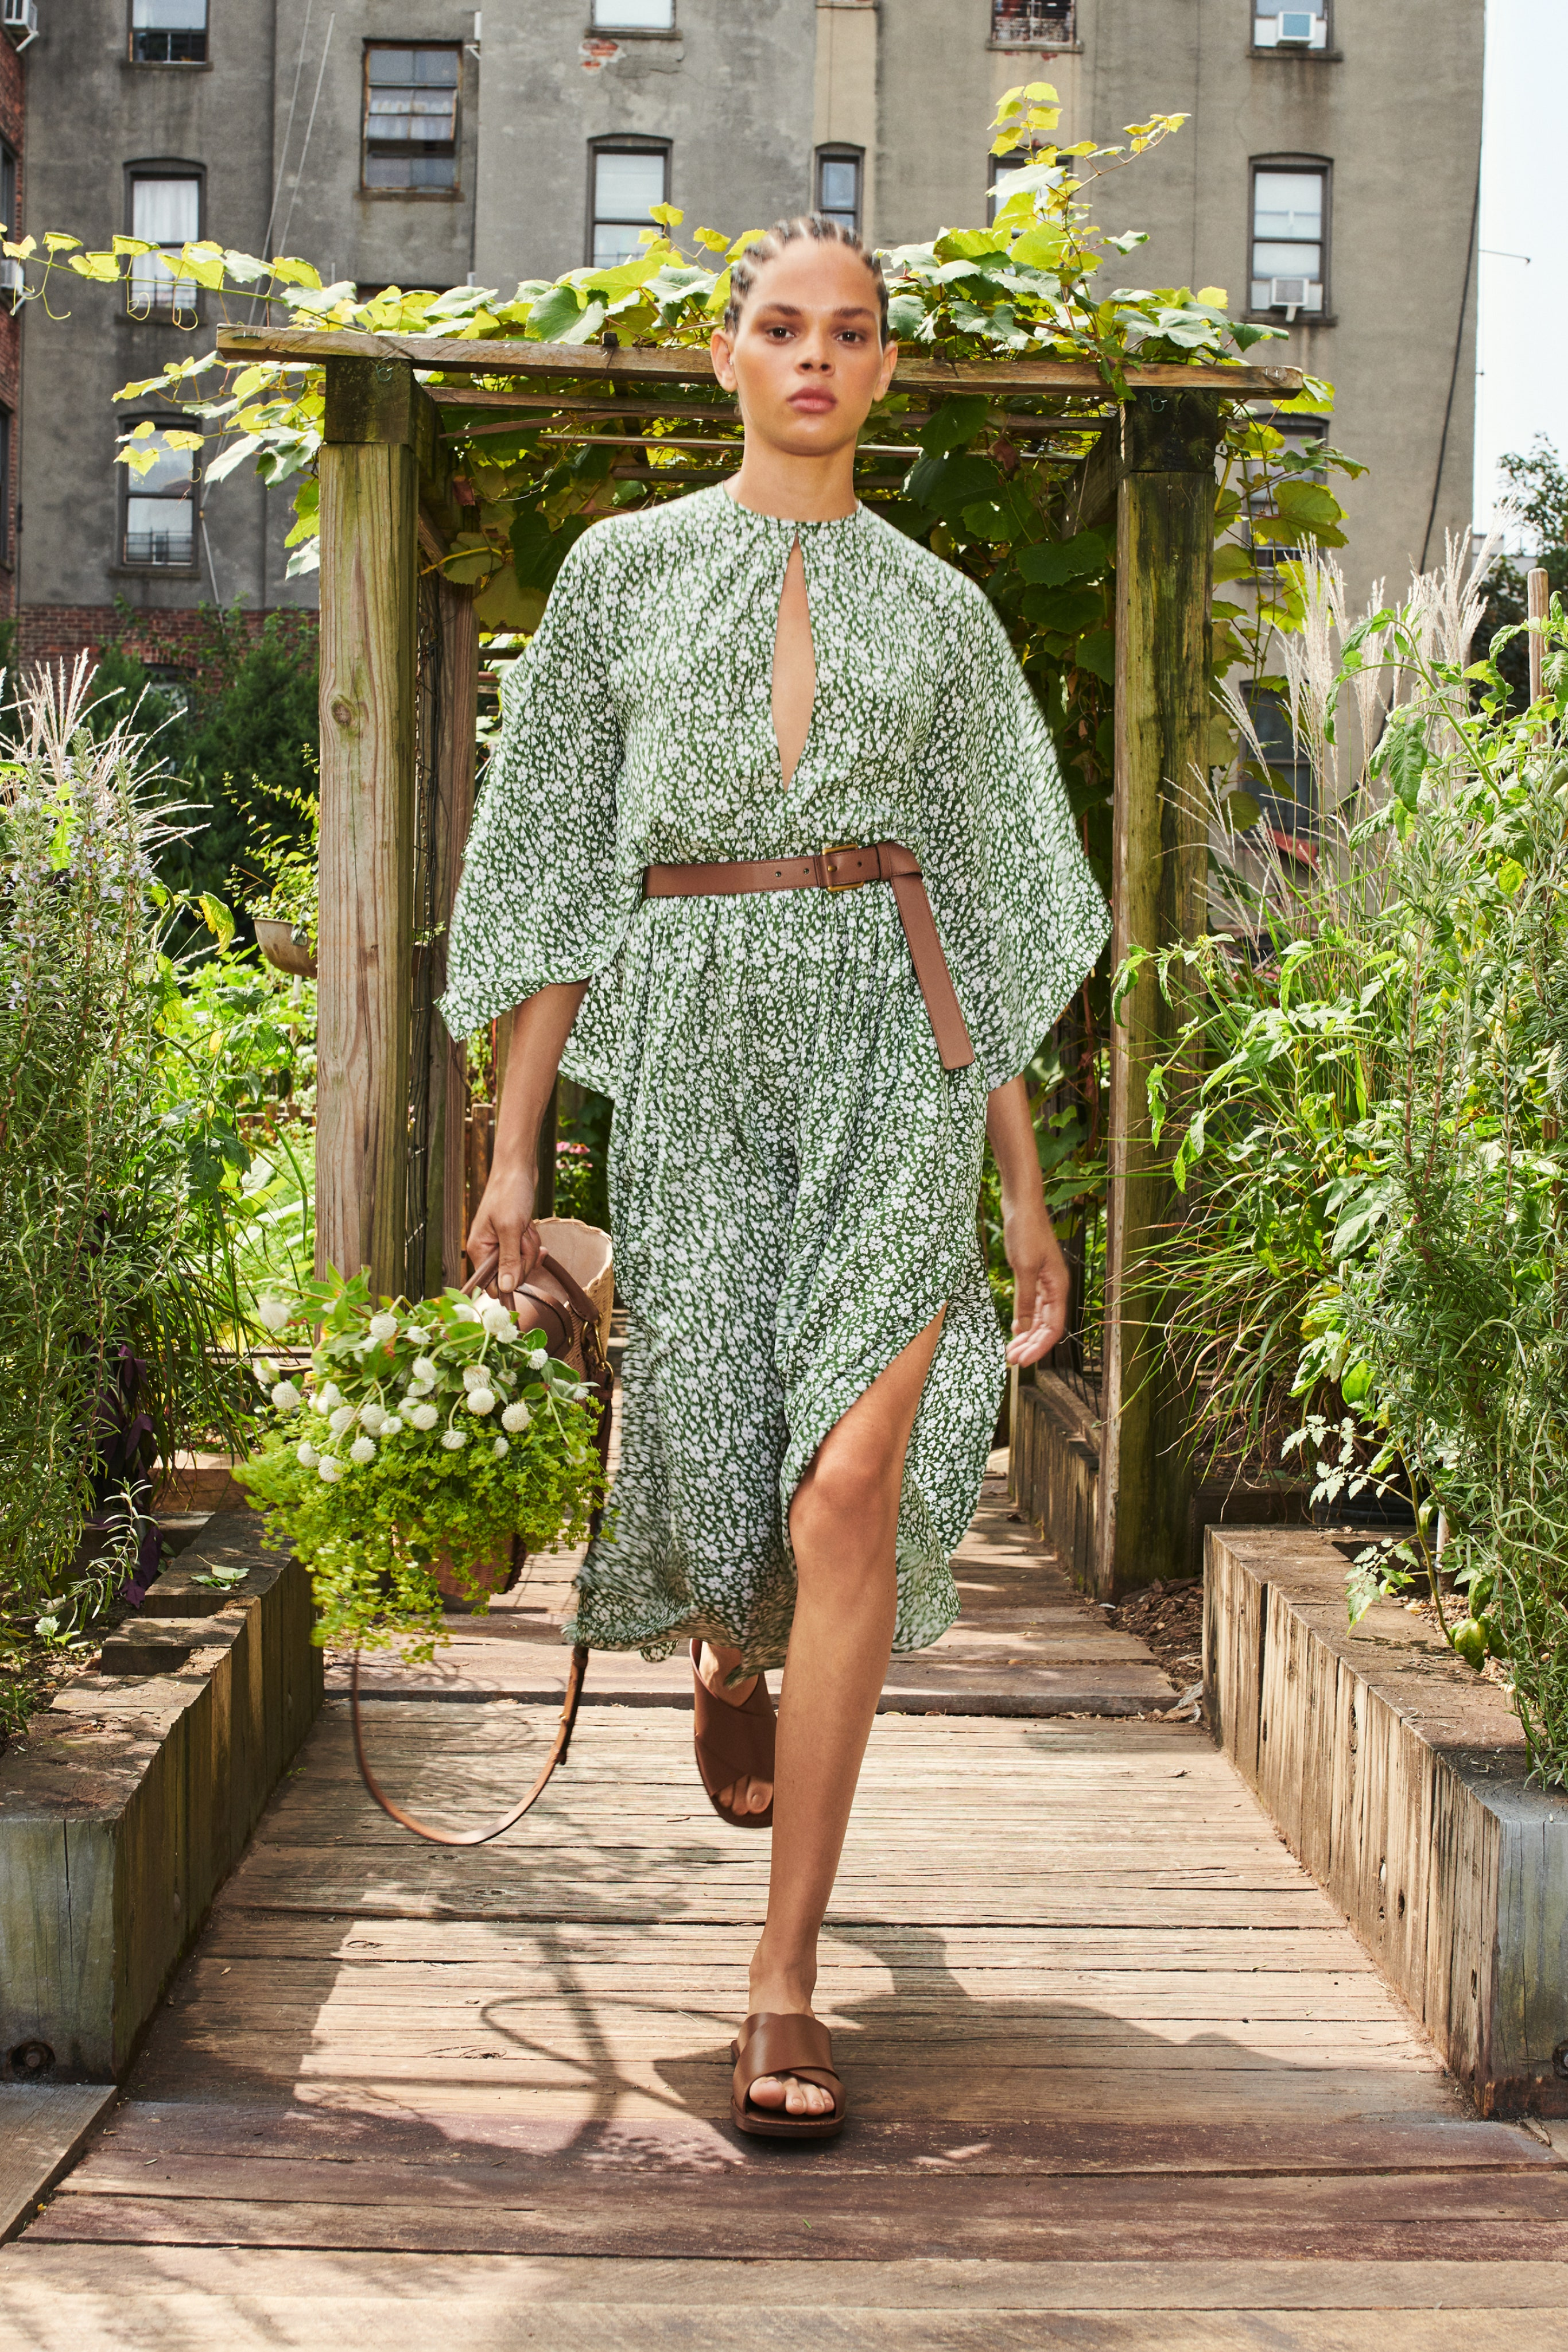 Michael Kors Spring 2021 ready-to-wear